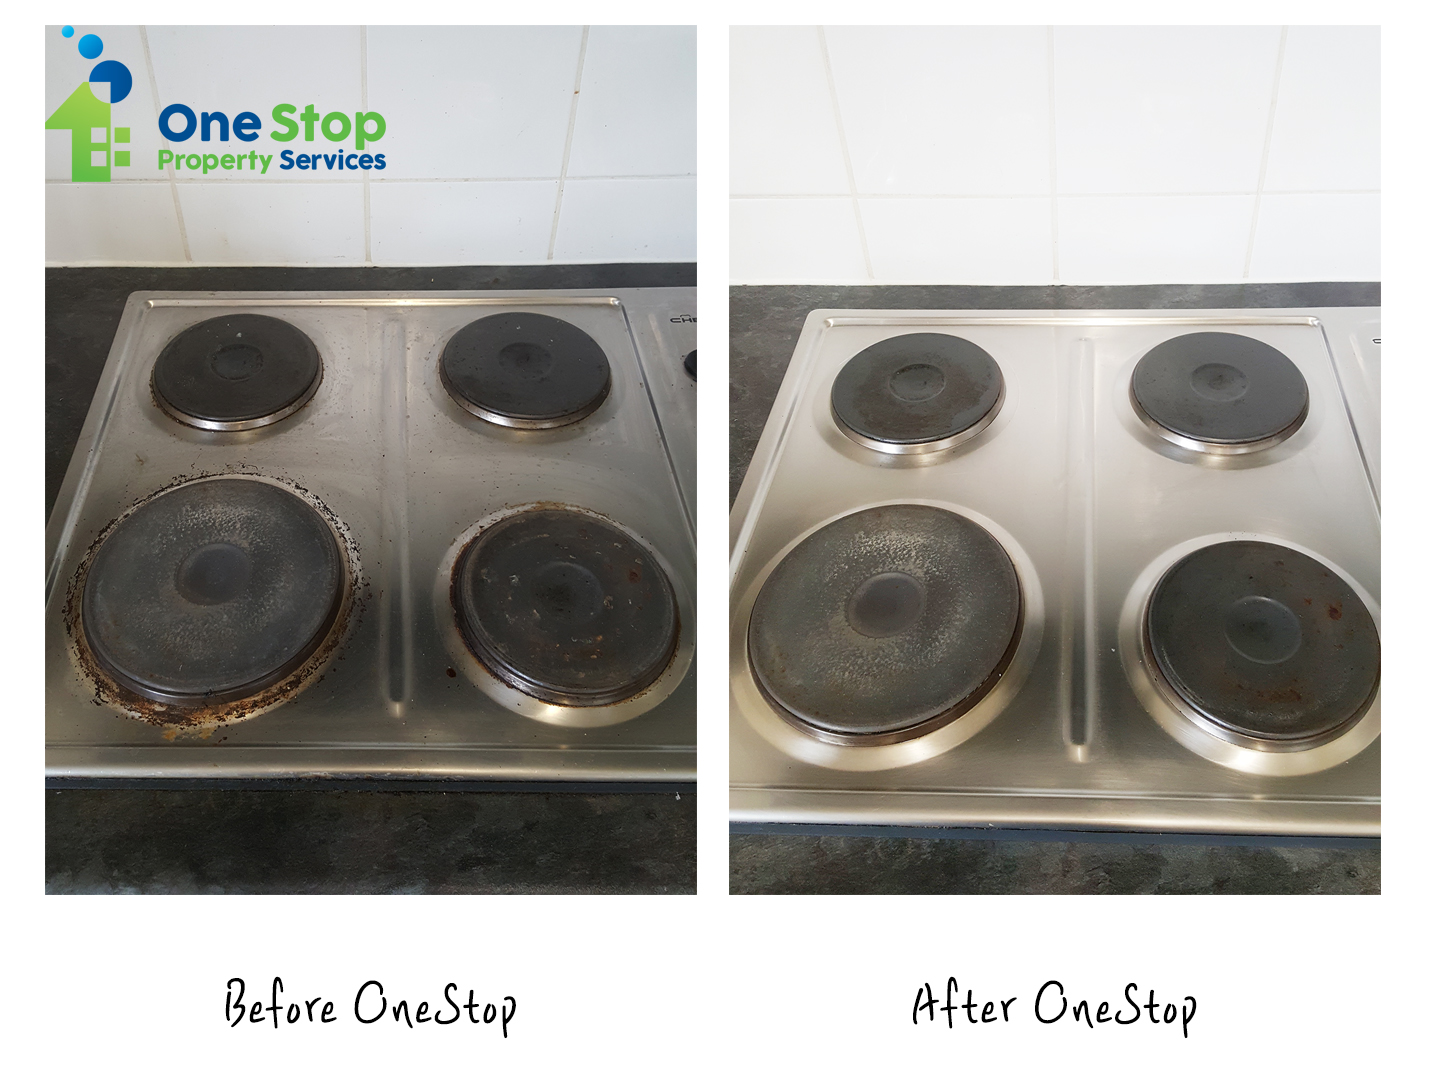 Before and after cleaning the induction